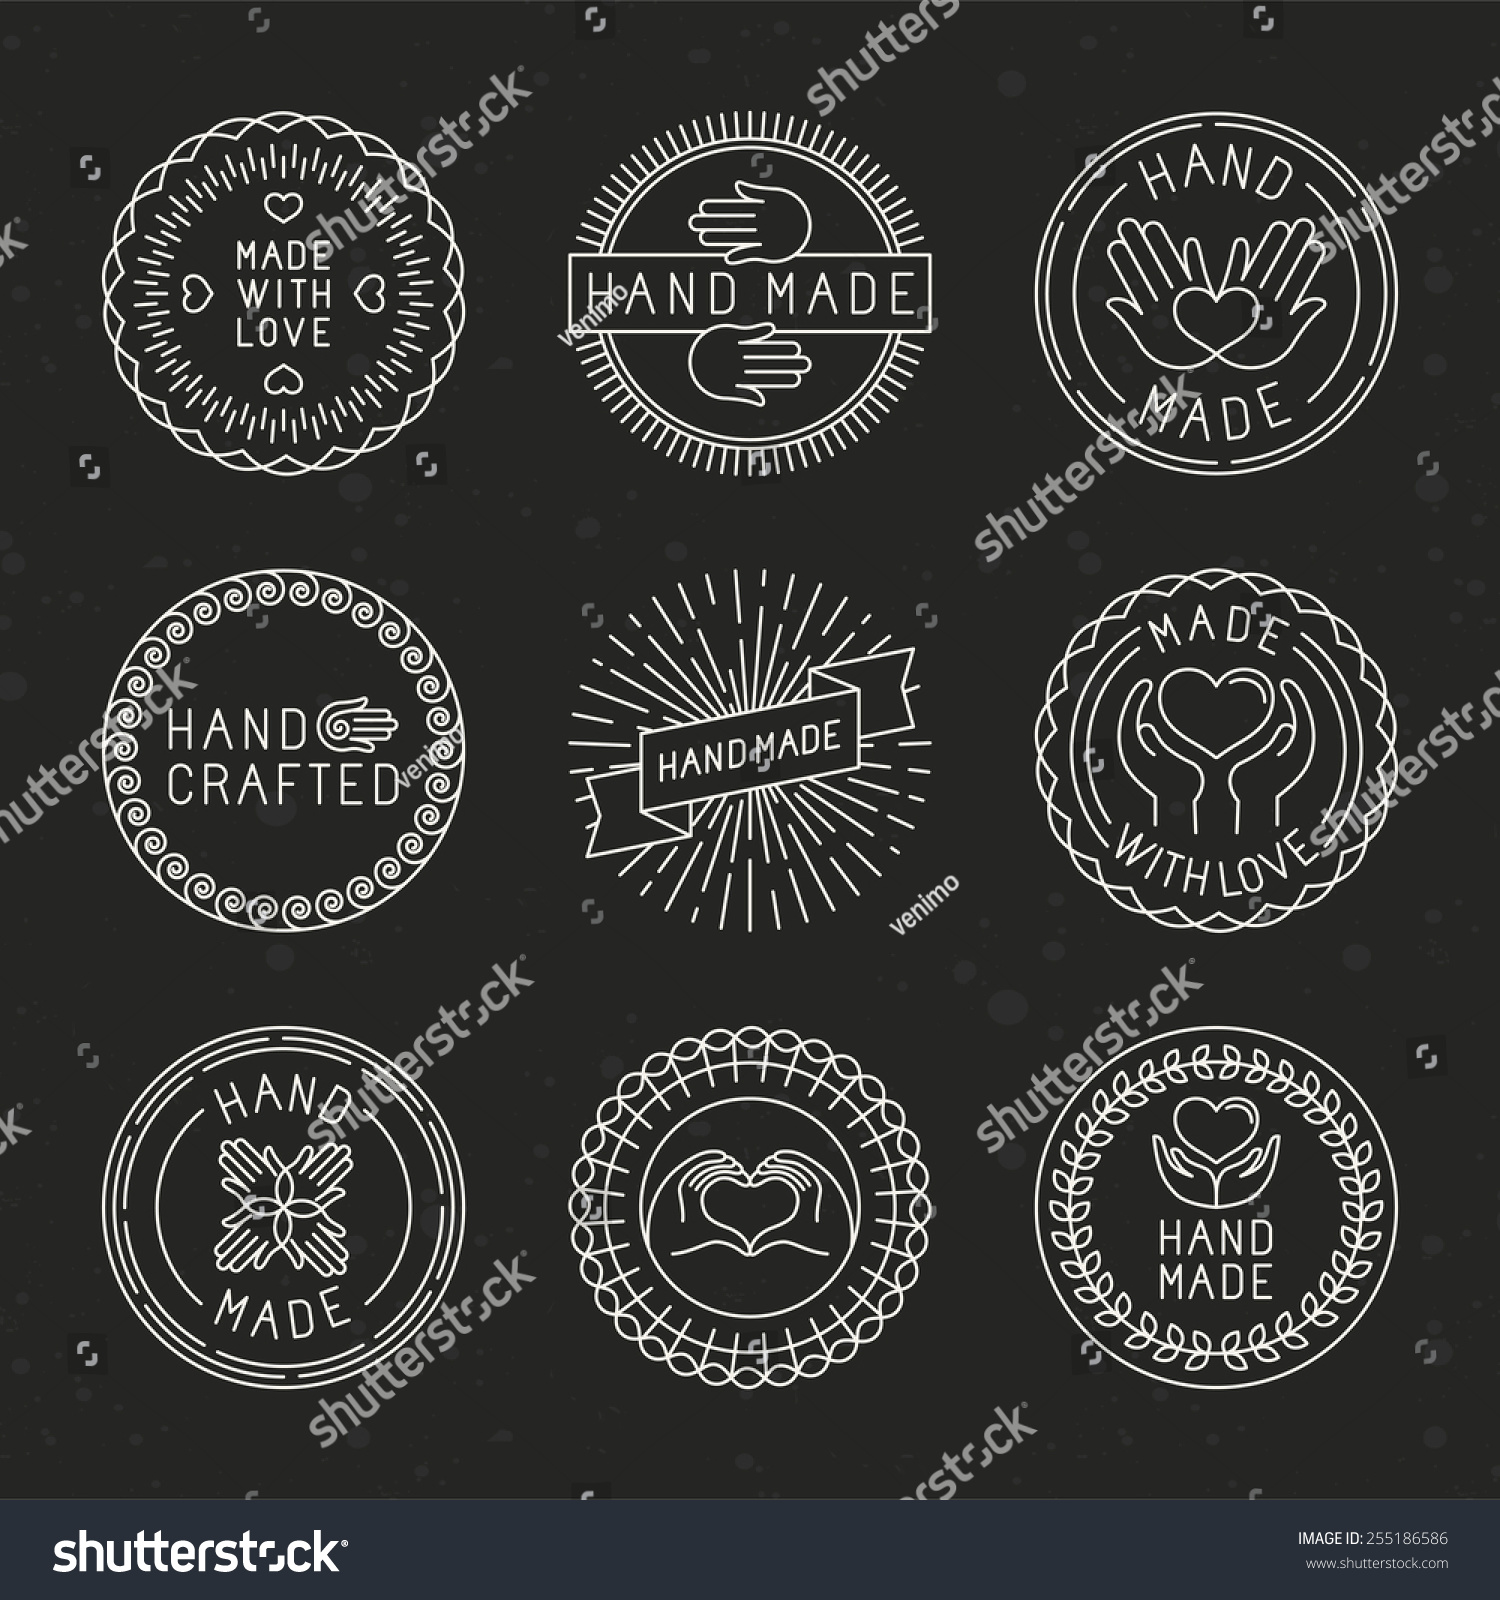 Vector set linear badges logo design stock vector for Handcrafted or hand crafted